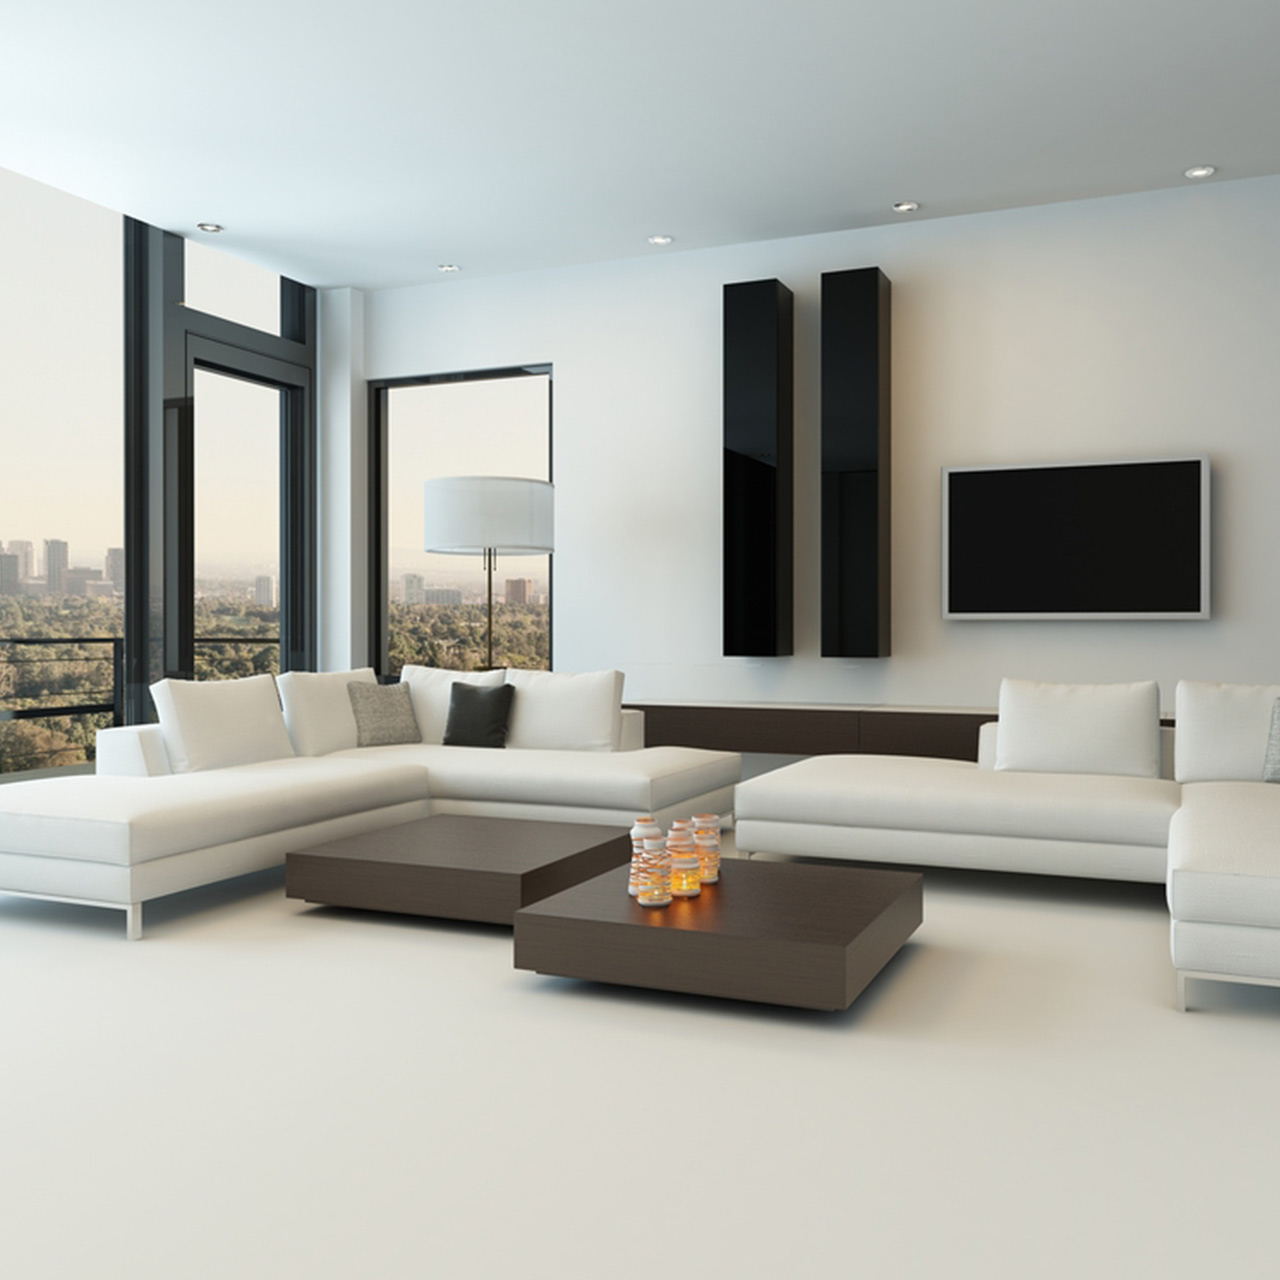 Penthouse design furniture in your penthouse apartment